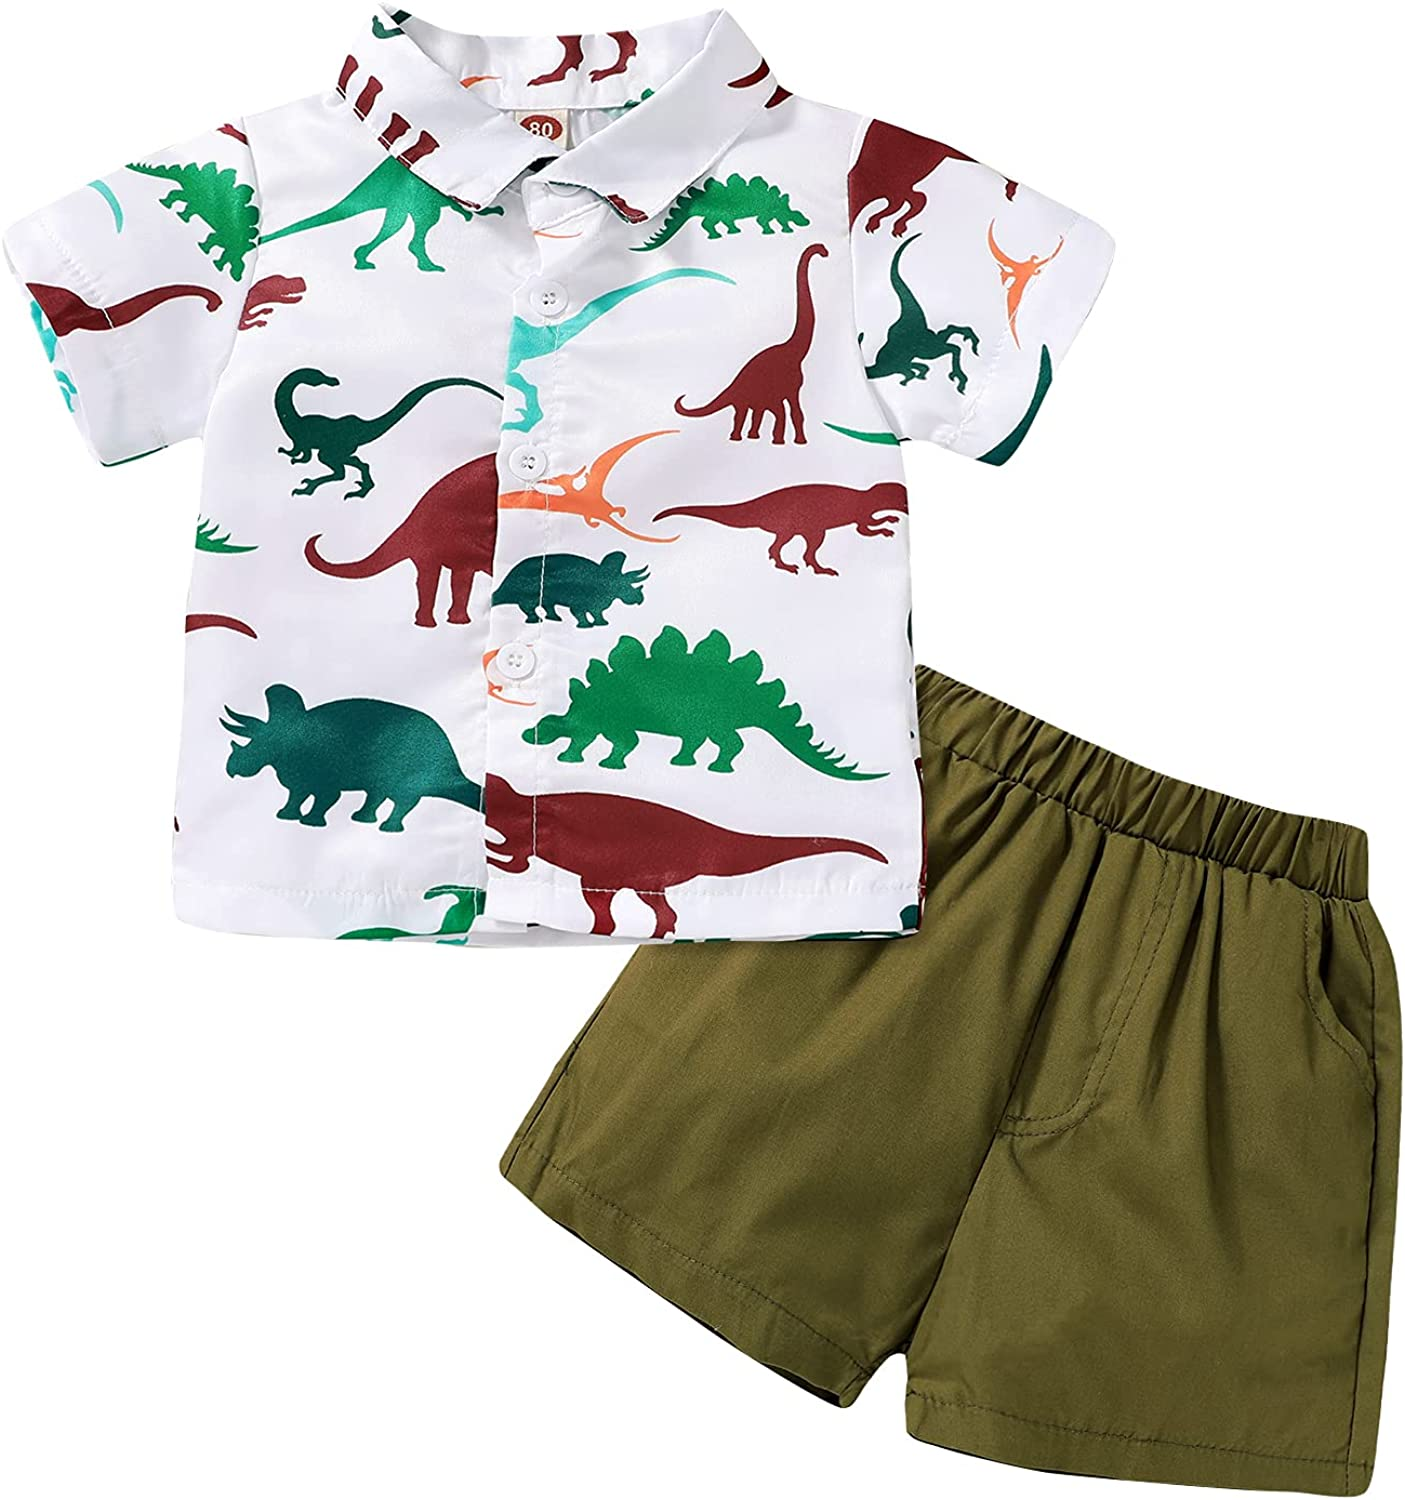 JEELLIGULAR Toddler Baby Boy Summer Clothes Short Sleeve Button Down Shirt Shorts Set Gentlemen Casual Outfits 1-6 Years